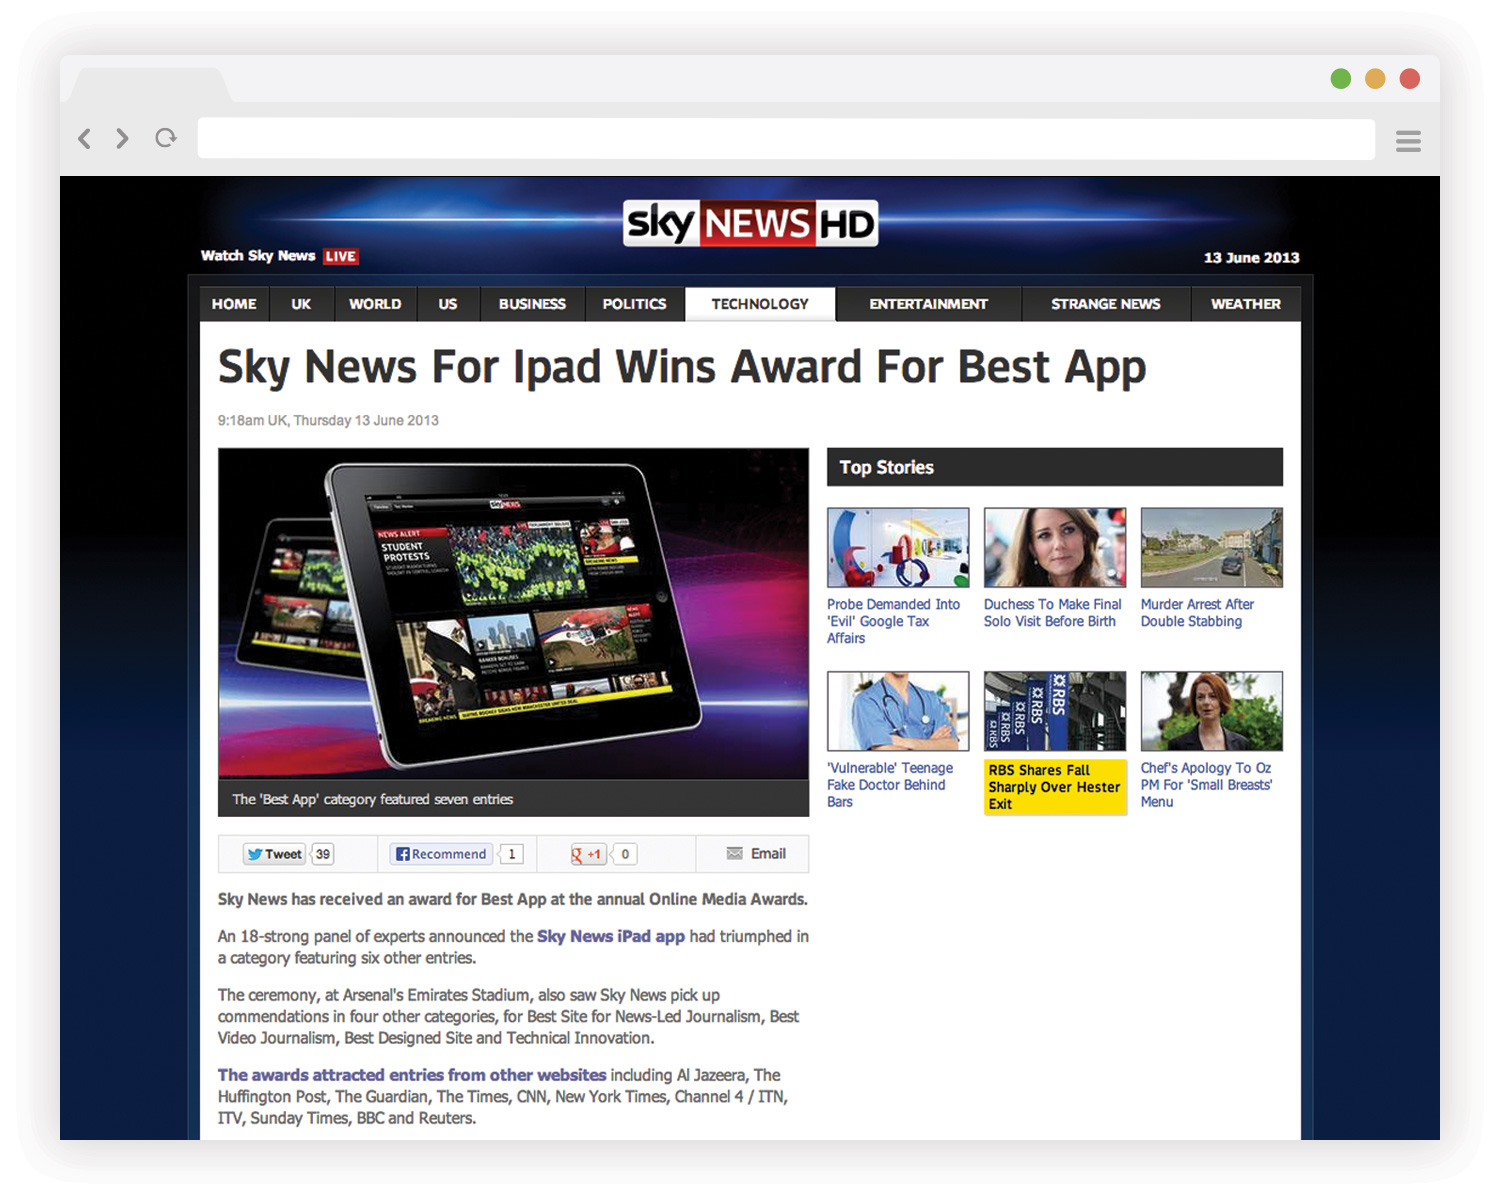 Sky News for iPad won a number of awards throughout the industry